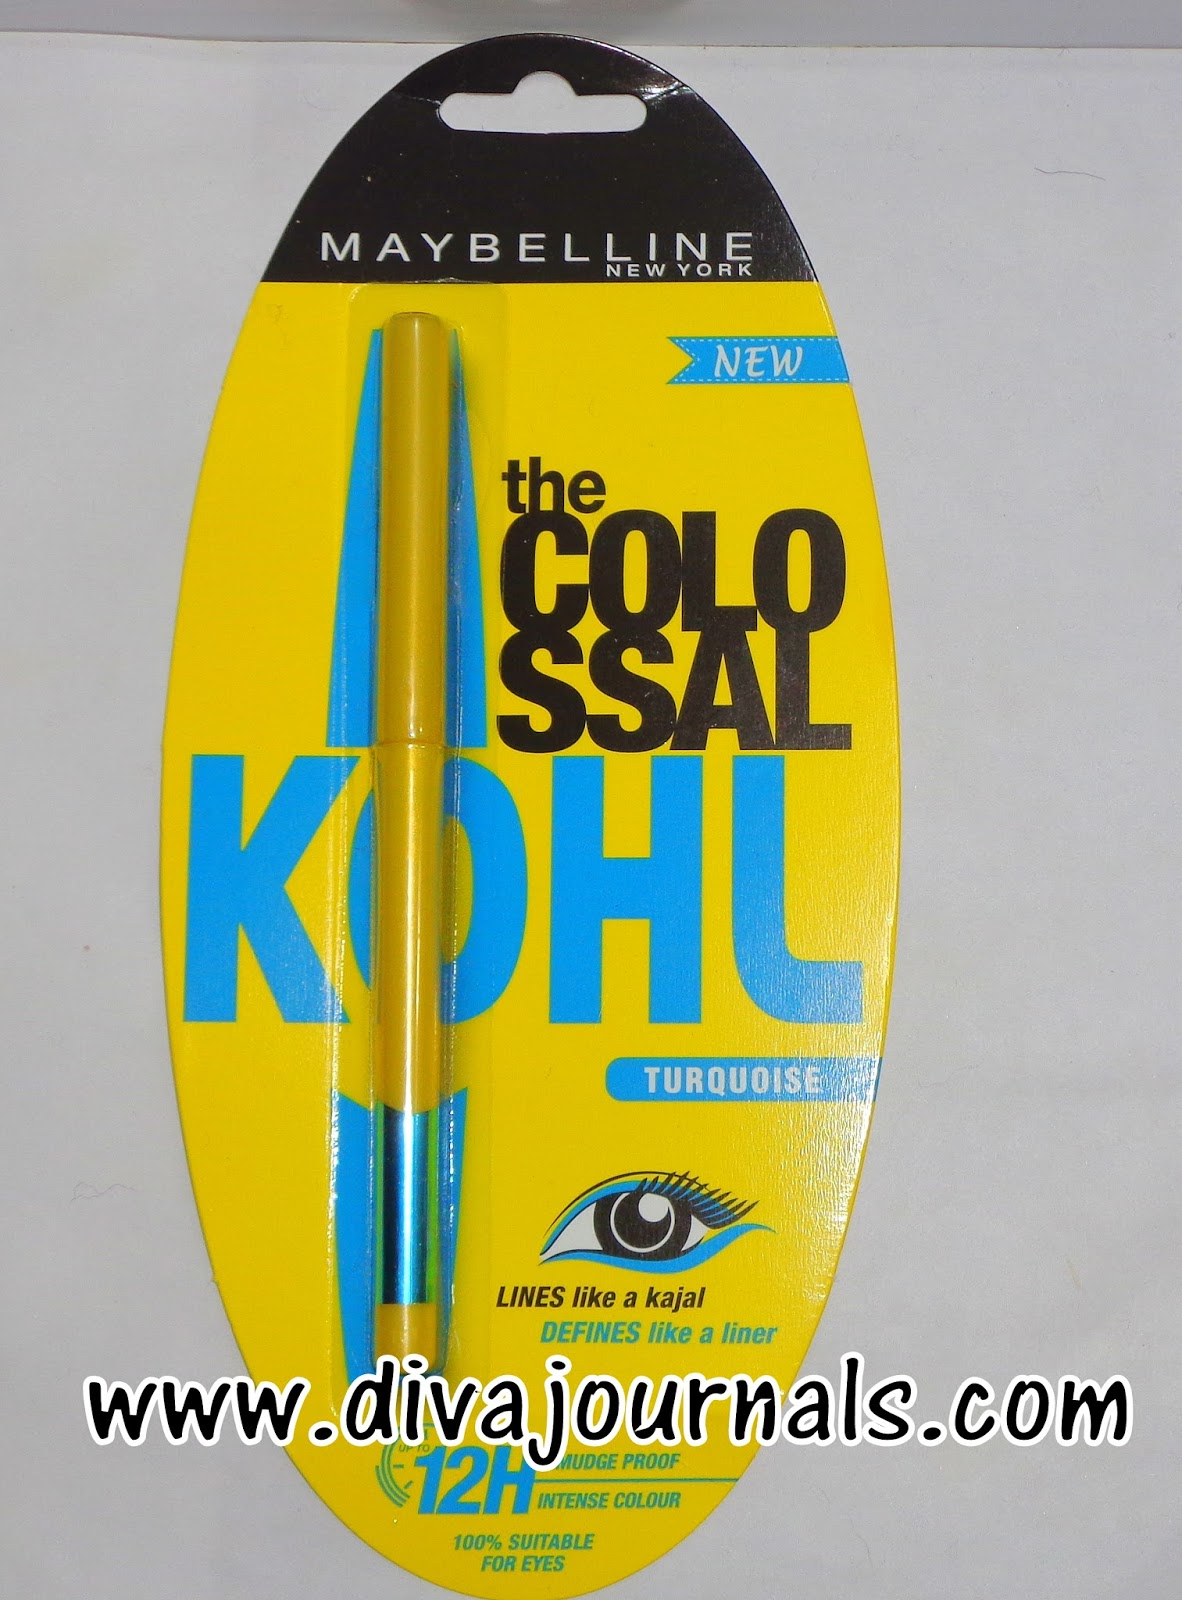 Maybelline Colassal Kohl Kajal-Turquoise Review